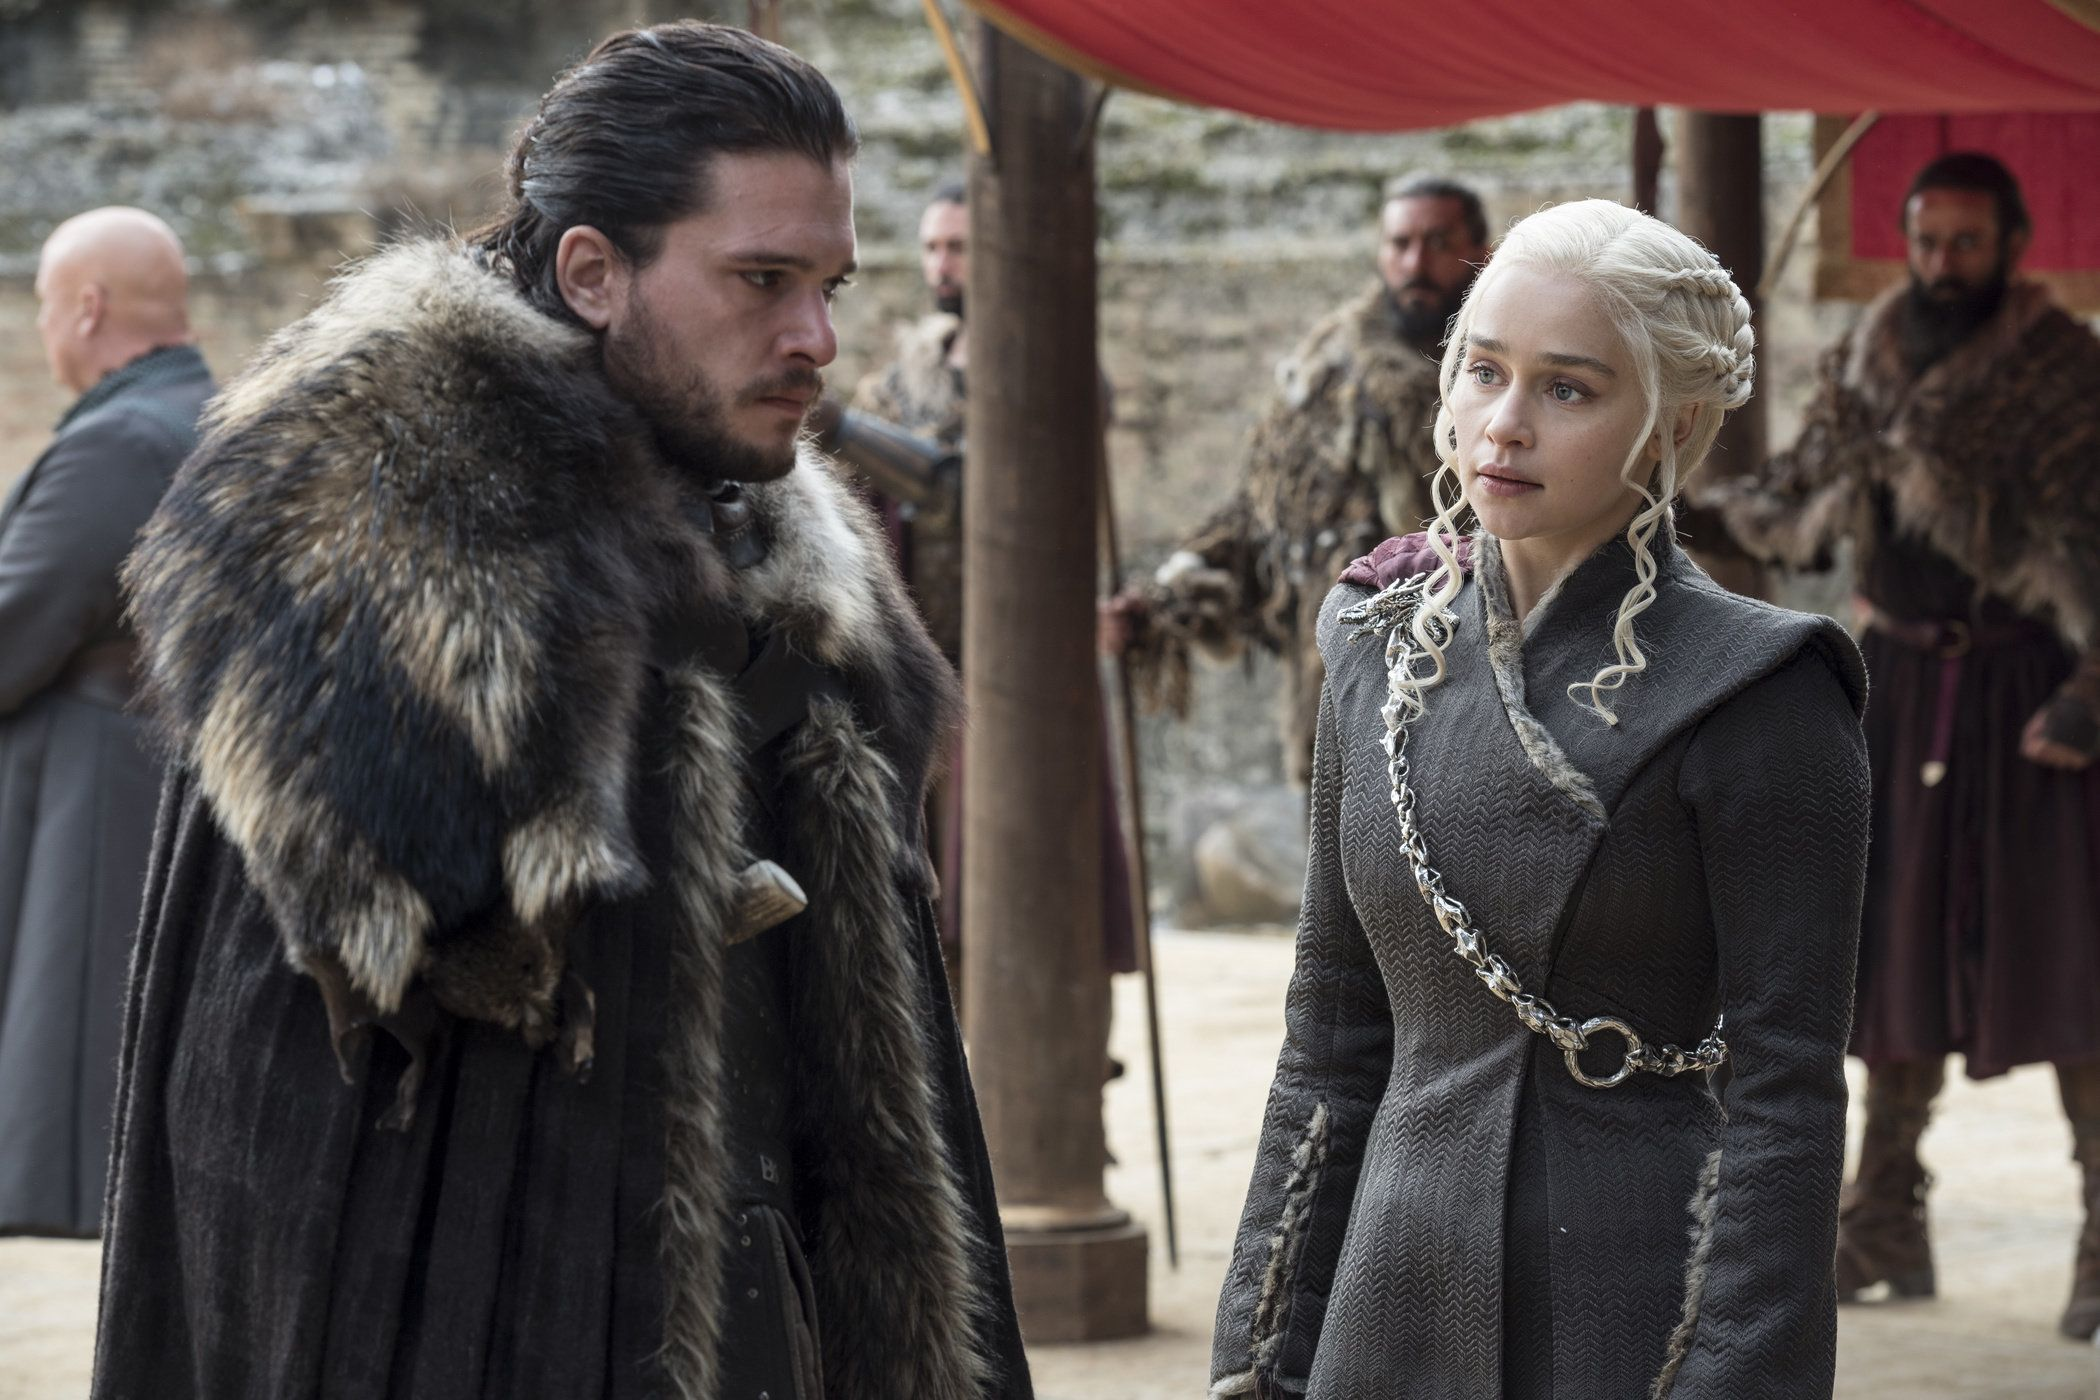 HBO teases Game Of Thrones footage ahead of final season